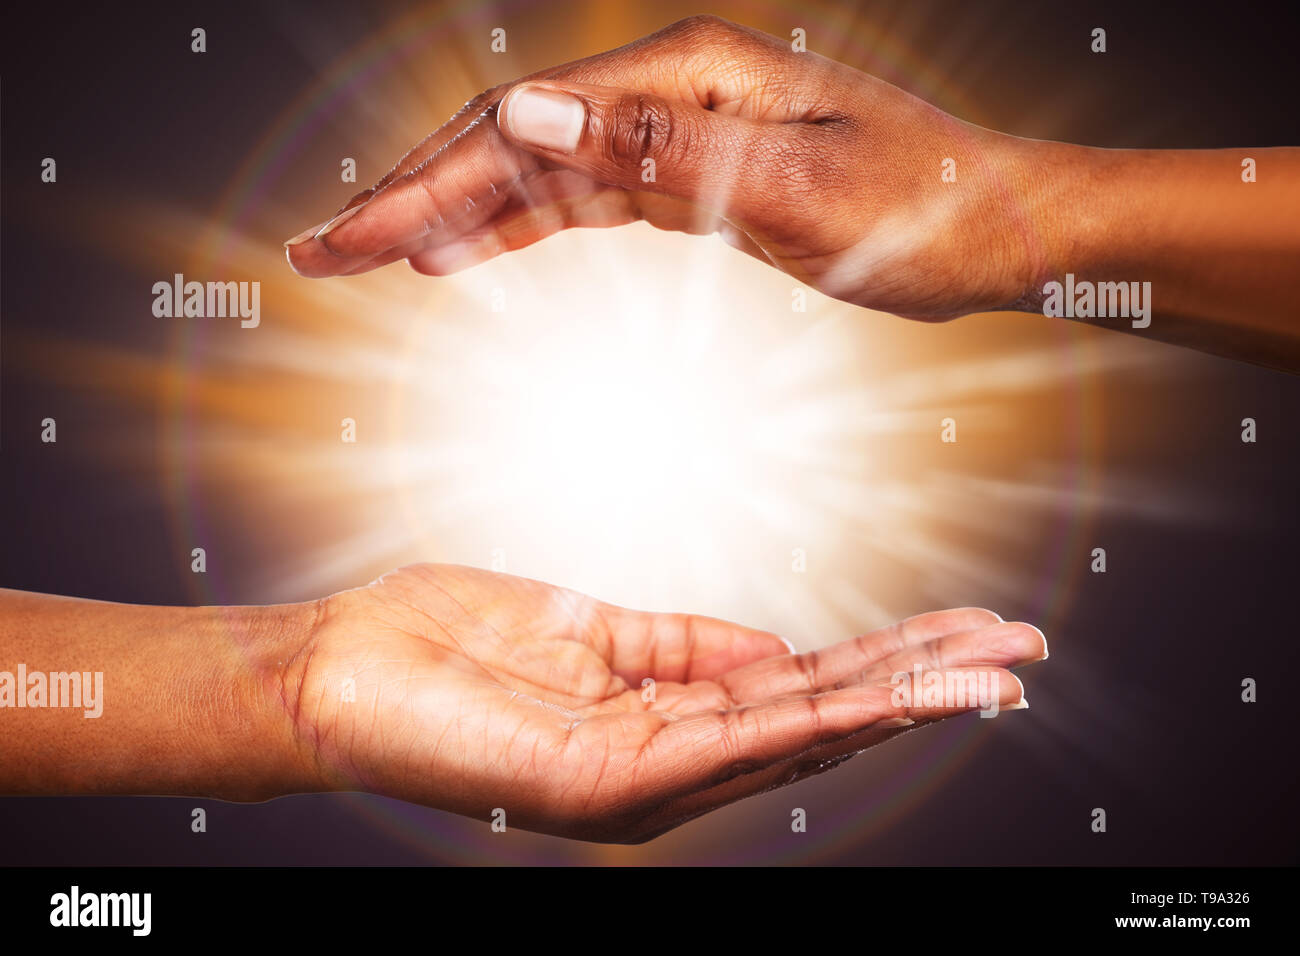 Close-up Of Mysterious Glowing Power In The Hands - Stock Image